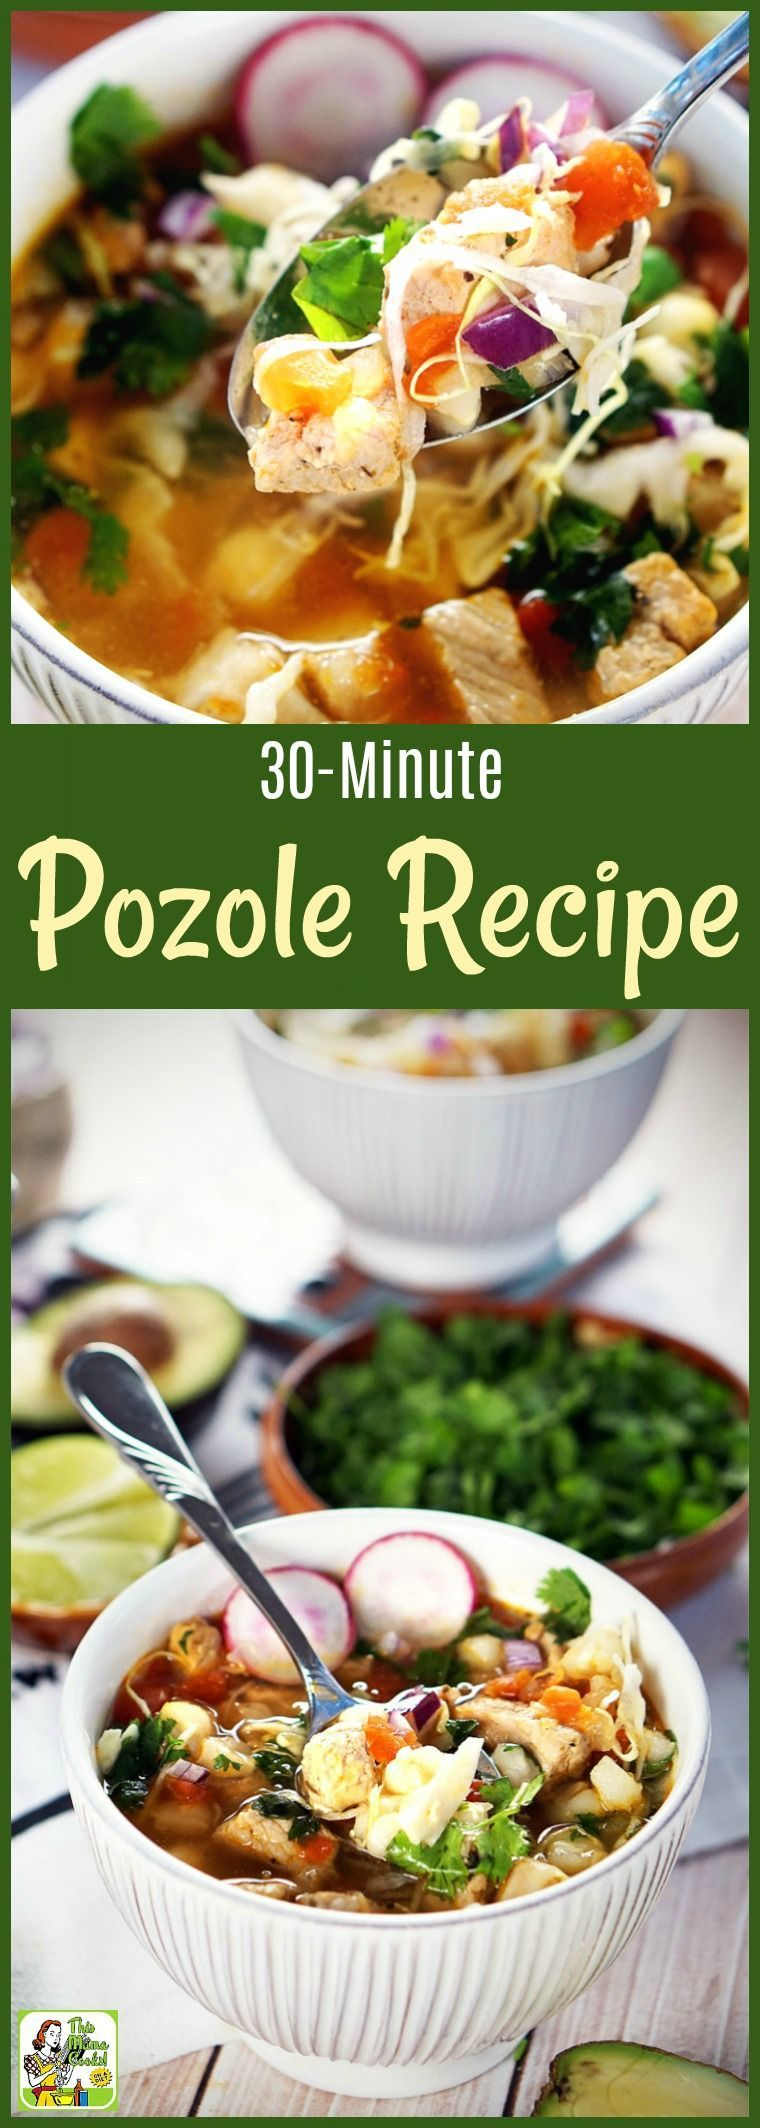 to know how to make pozole in less than 30 minutes? This pork pozole recipe combines pozole verde and pozole rojo. Can be made with chicken, too.